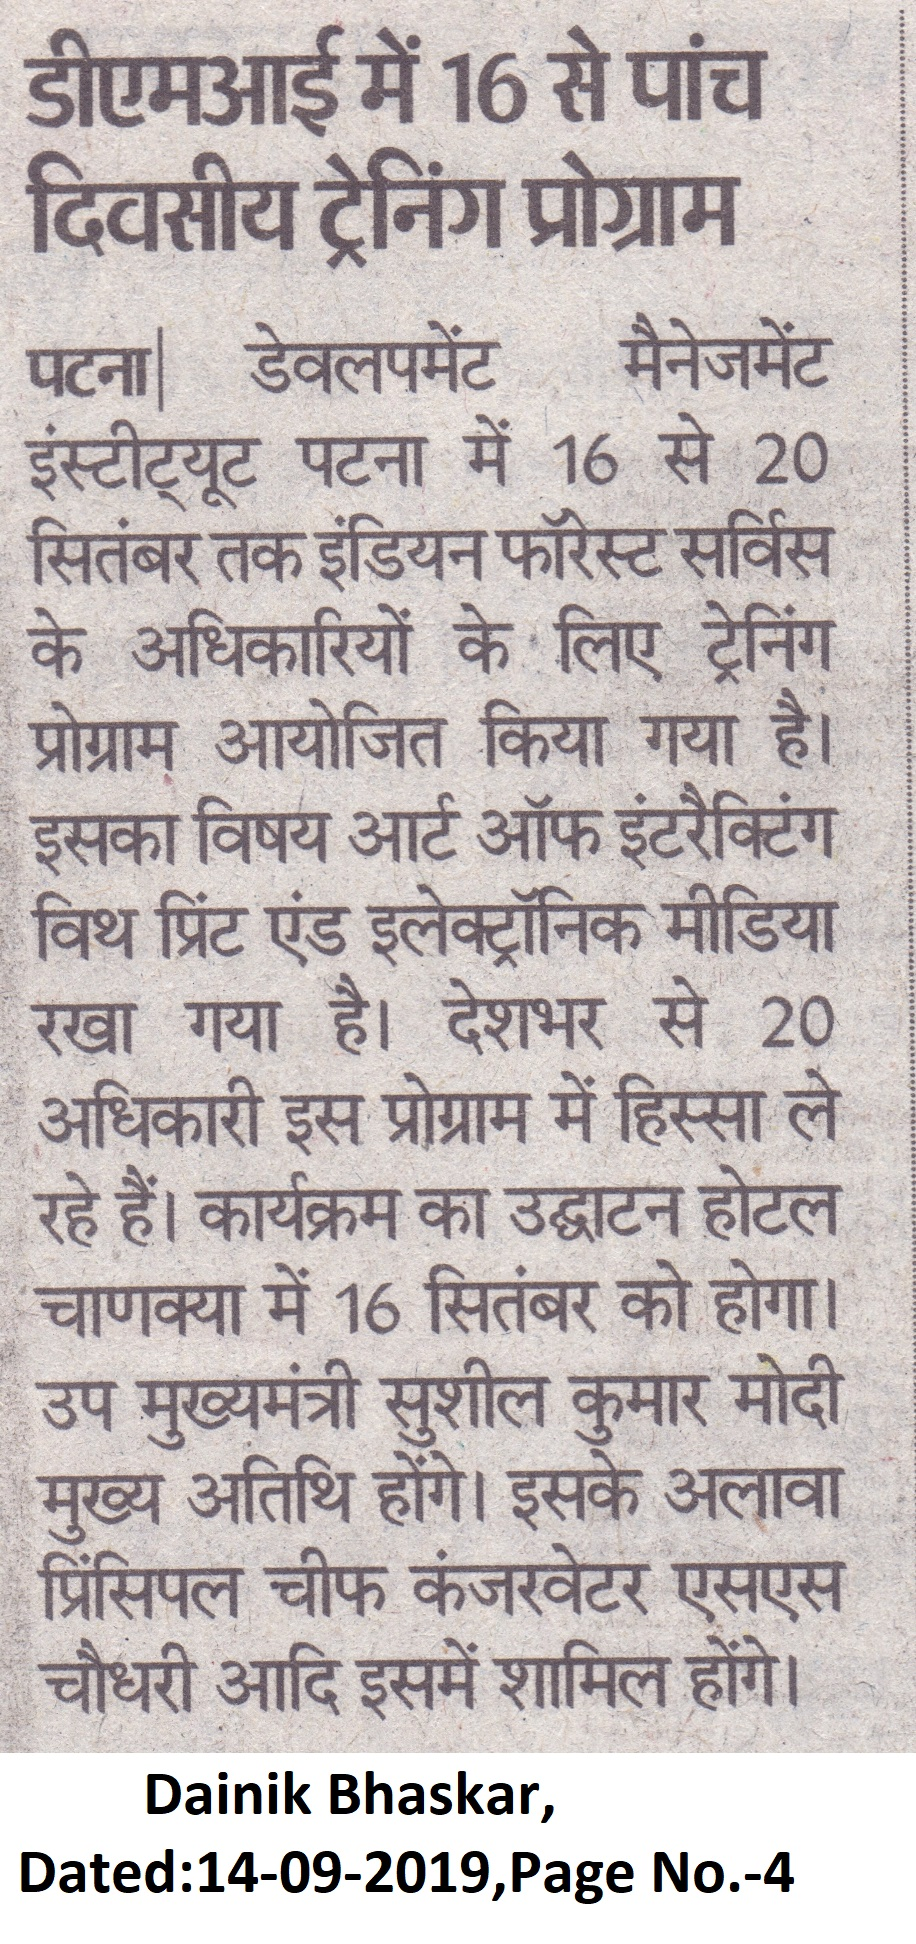 Dainik Bhaskar about the 5 day Training for IFS officers  14-09-2019